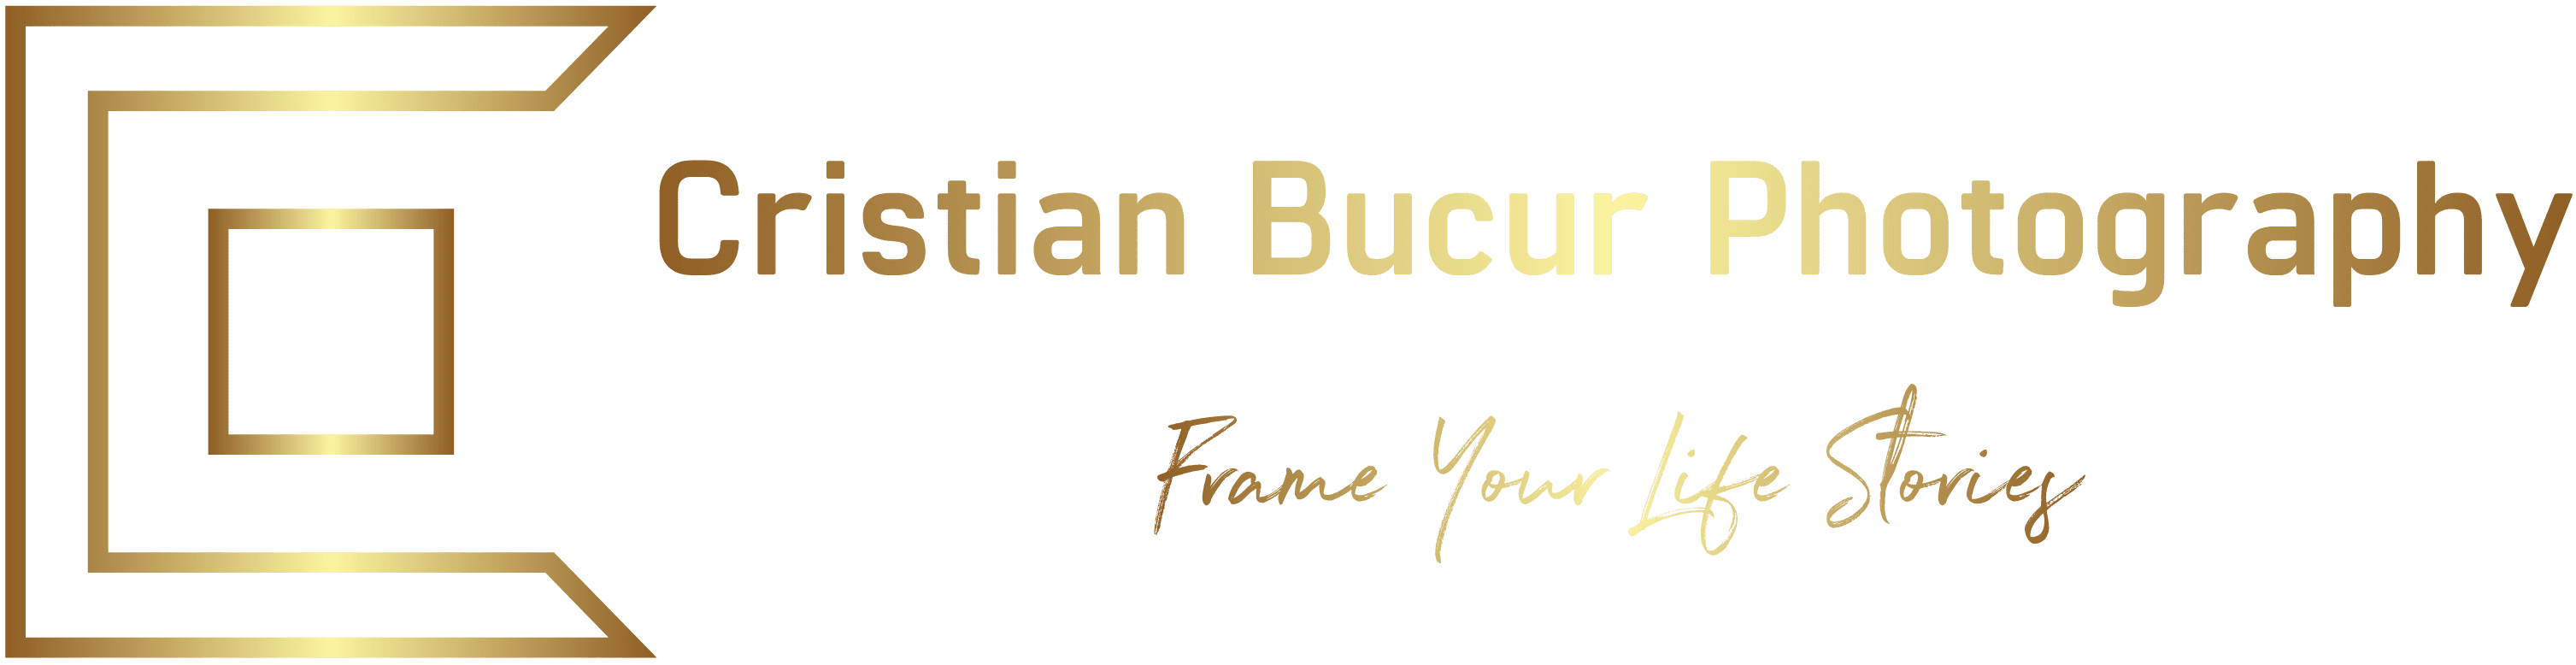 Cristian Bucur Photography Logo